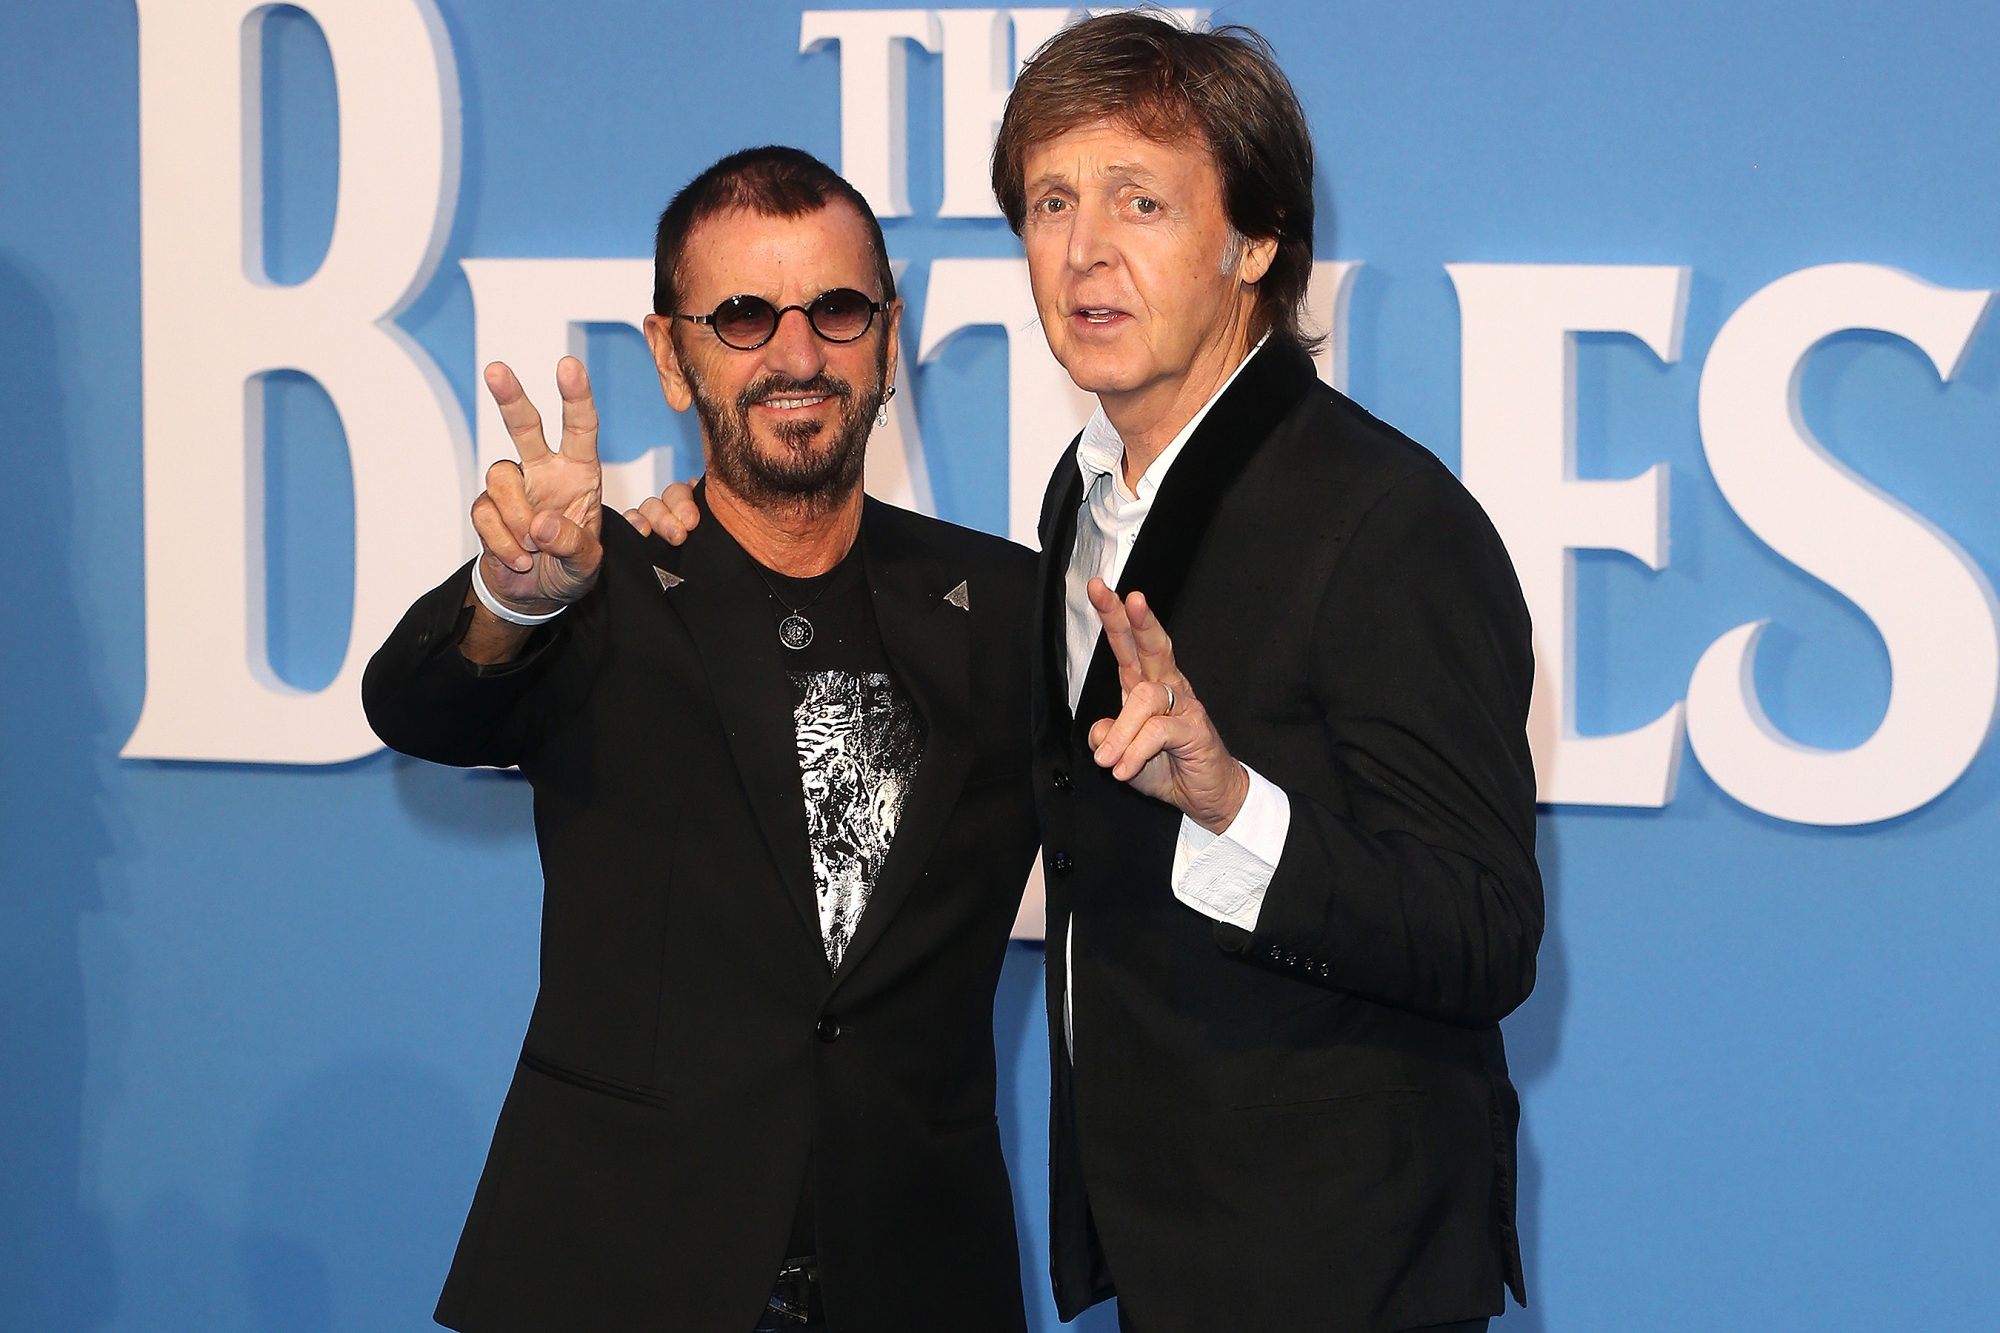 Paul Mccartney And Ringo Starr Come Together On Unheard Demo Tape People Com